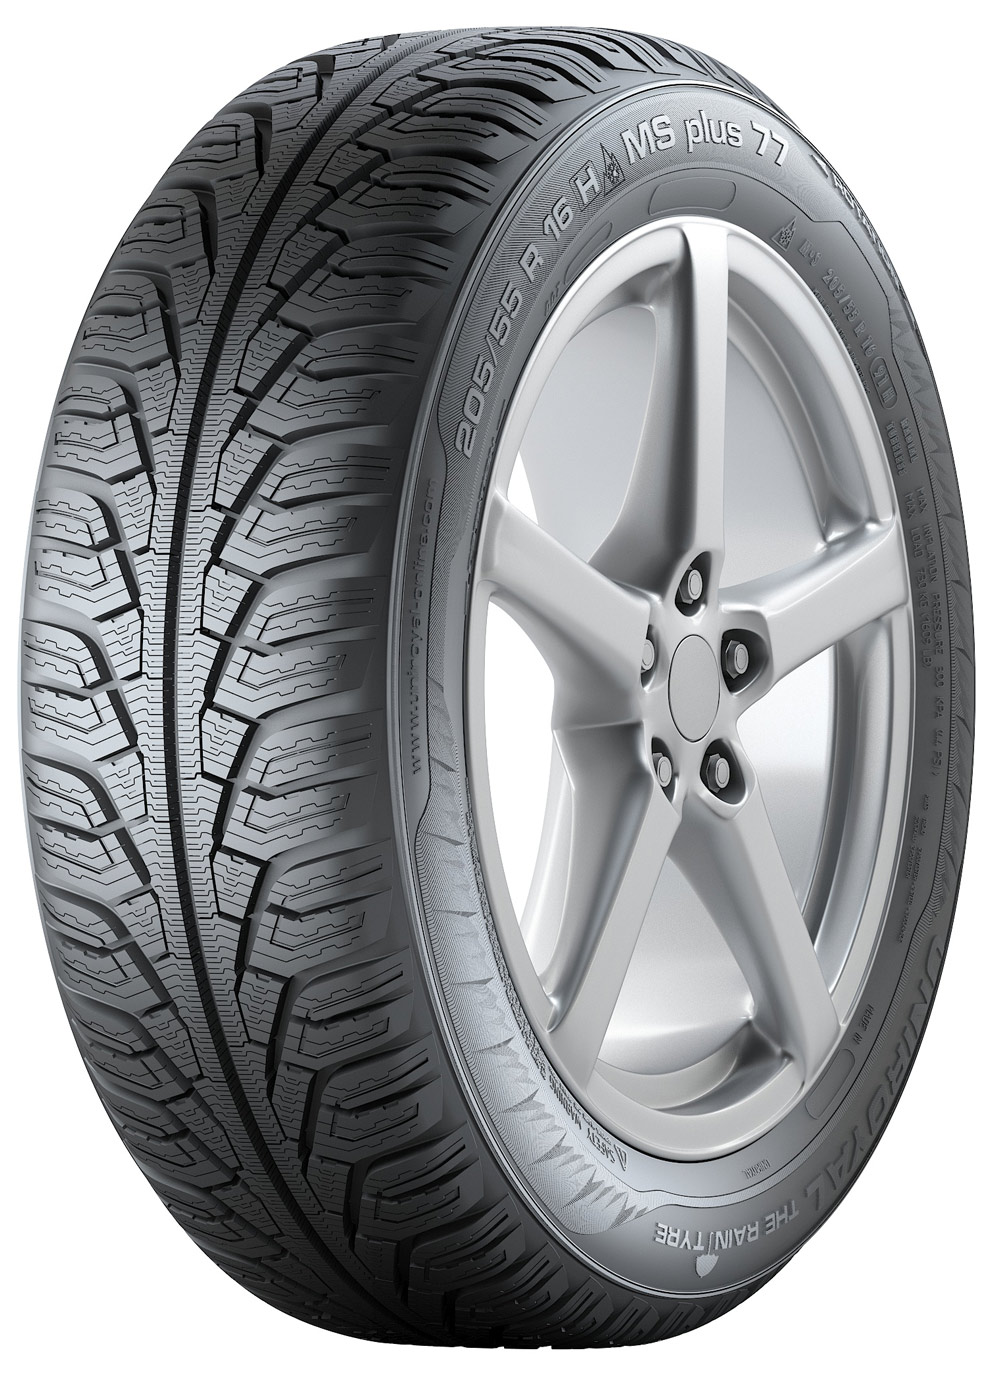 UNIROYAL MS PLUS 77 195/50 R 15